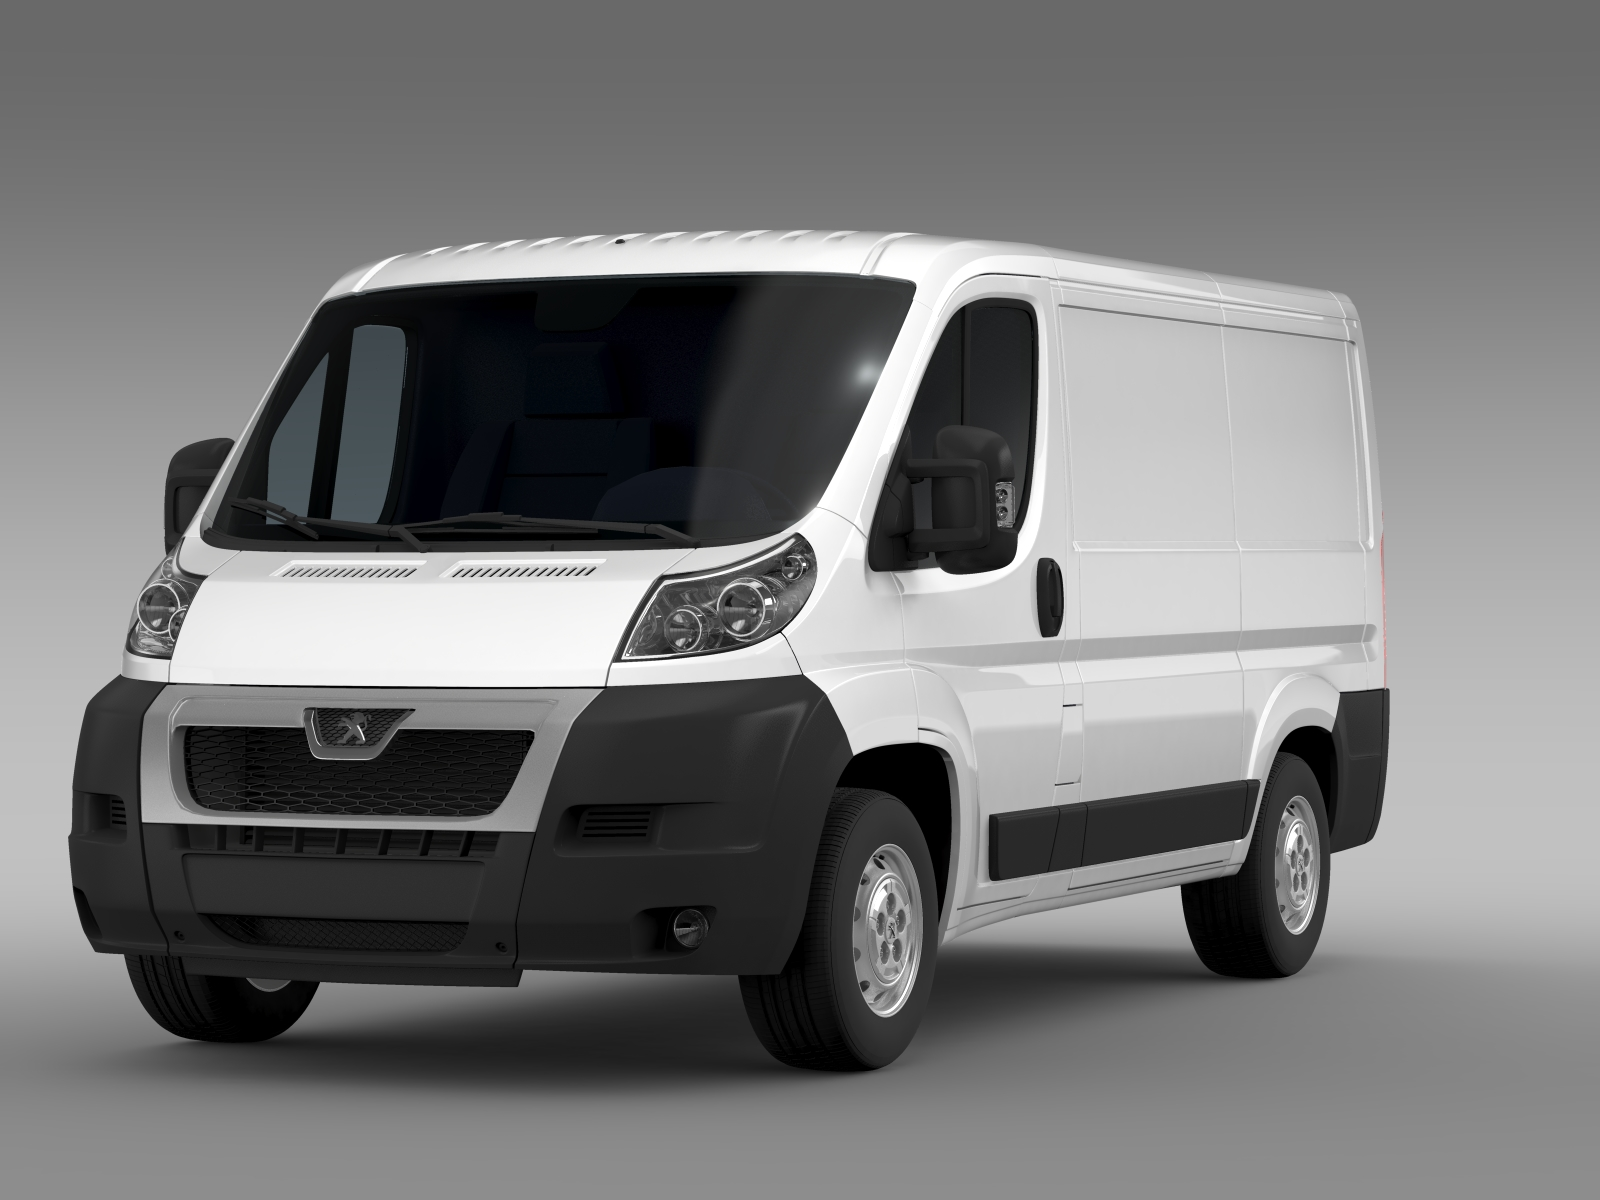 peugeot boxer van l1h1 2006 2014 3d model buy peugeot boxer van l1h1 2006 2014 3d model. Black Bedroom Furniture Sets. Home Design Ideas